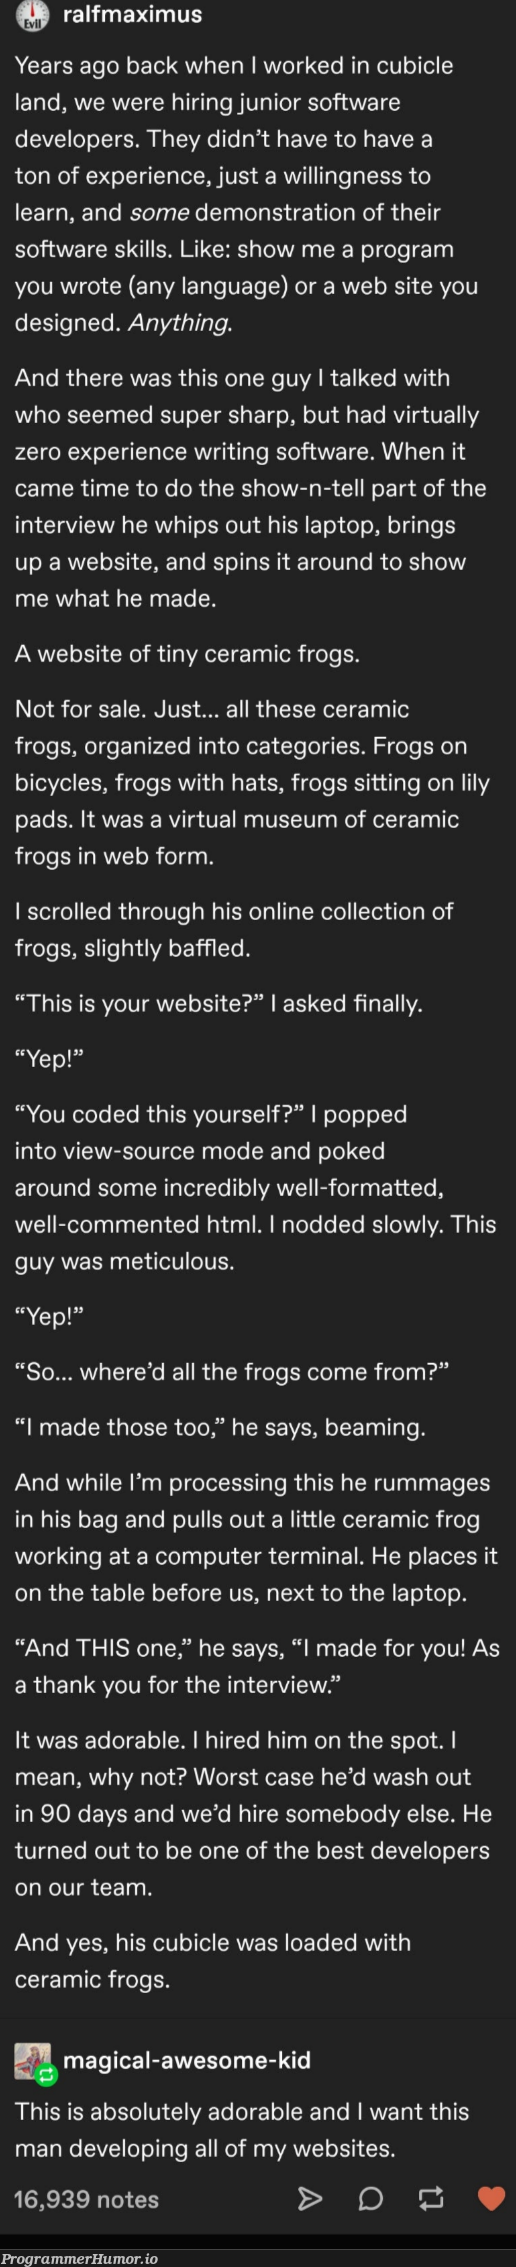 We've all love rubber ducks, but what about frogs... | developer-memes, html-memes, software-memes, code-memes, computer-memes, software developer-memes, web-memes, design-memes, website-memes, program-memes, terminal-memes, IT-memes, ML-memes, laptop-memes, language-memes, comment-memes, interview-memes | ProgrammerHumor.io